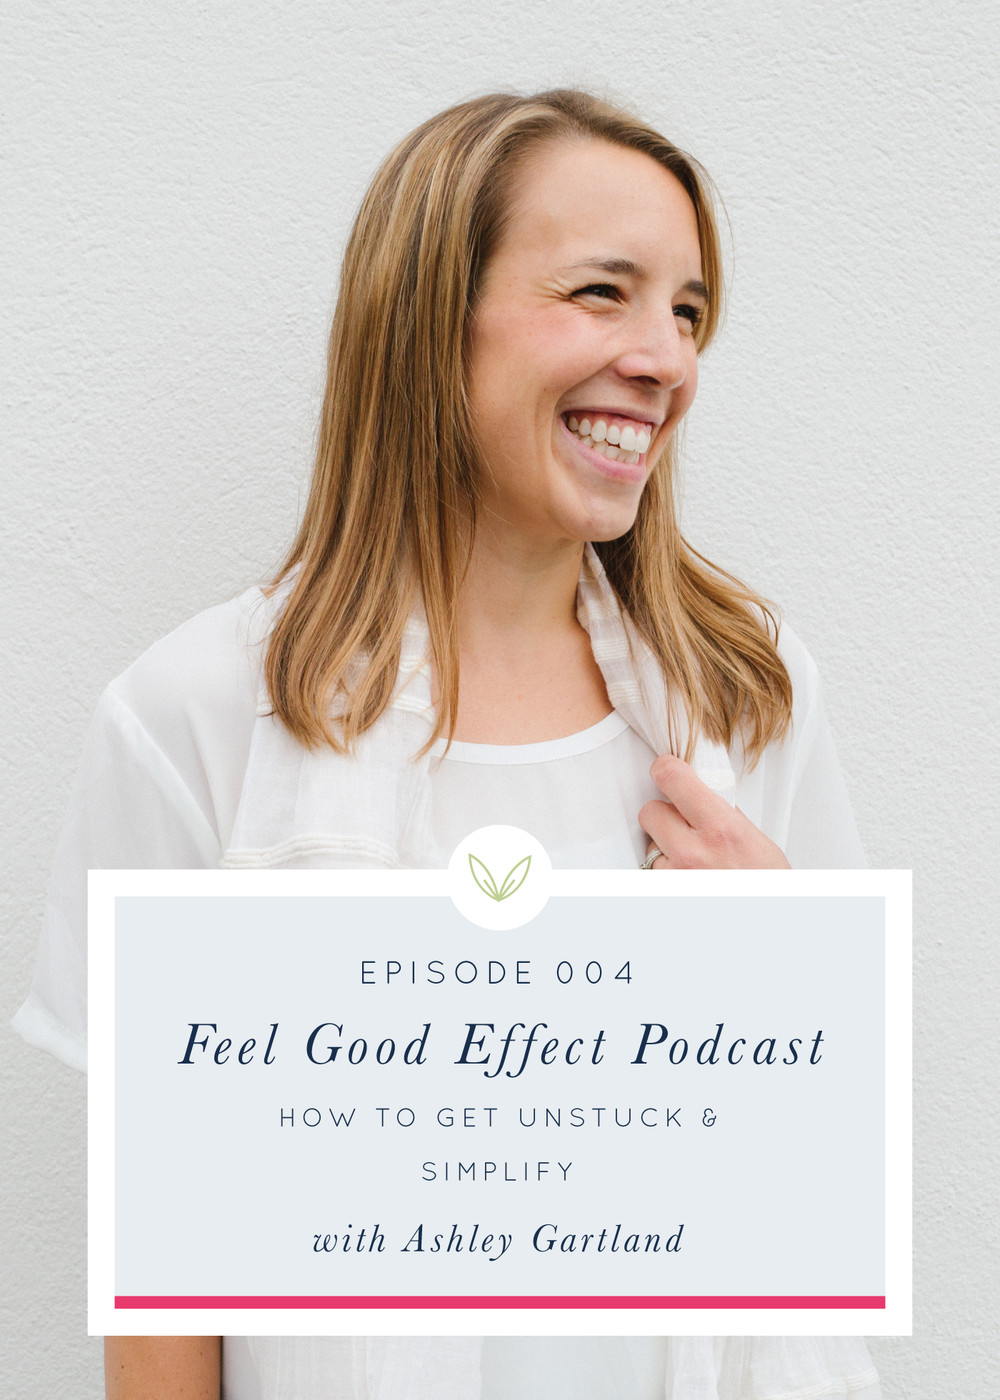 How to Get Unstuck & Simplify with Ashley Gartland, Feel Good Effect Podcast